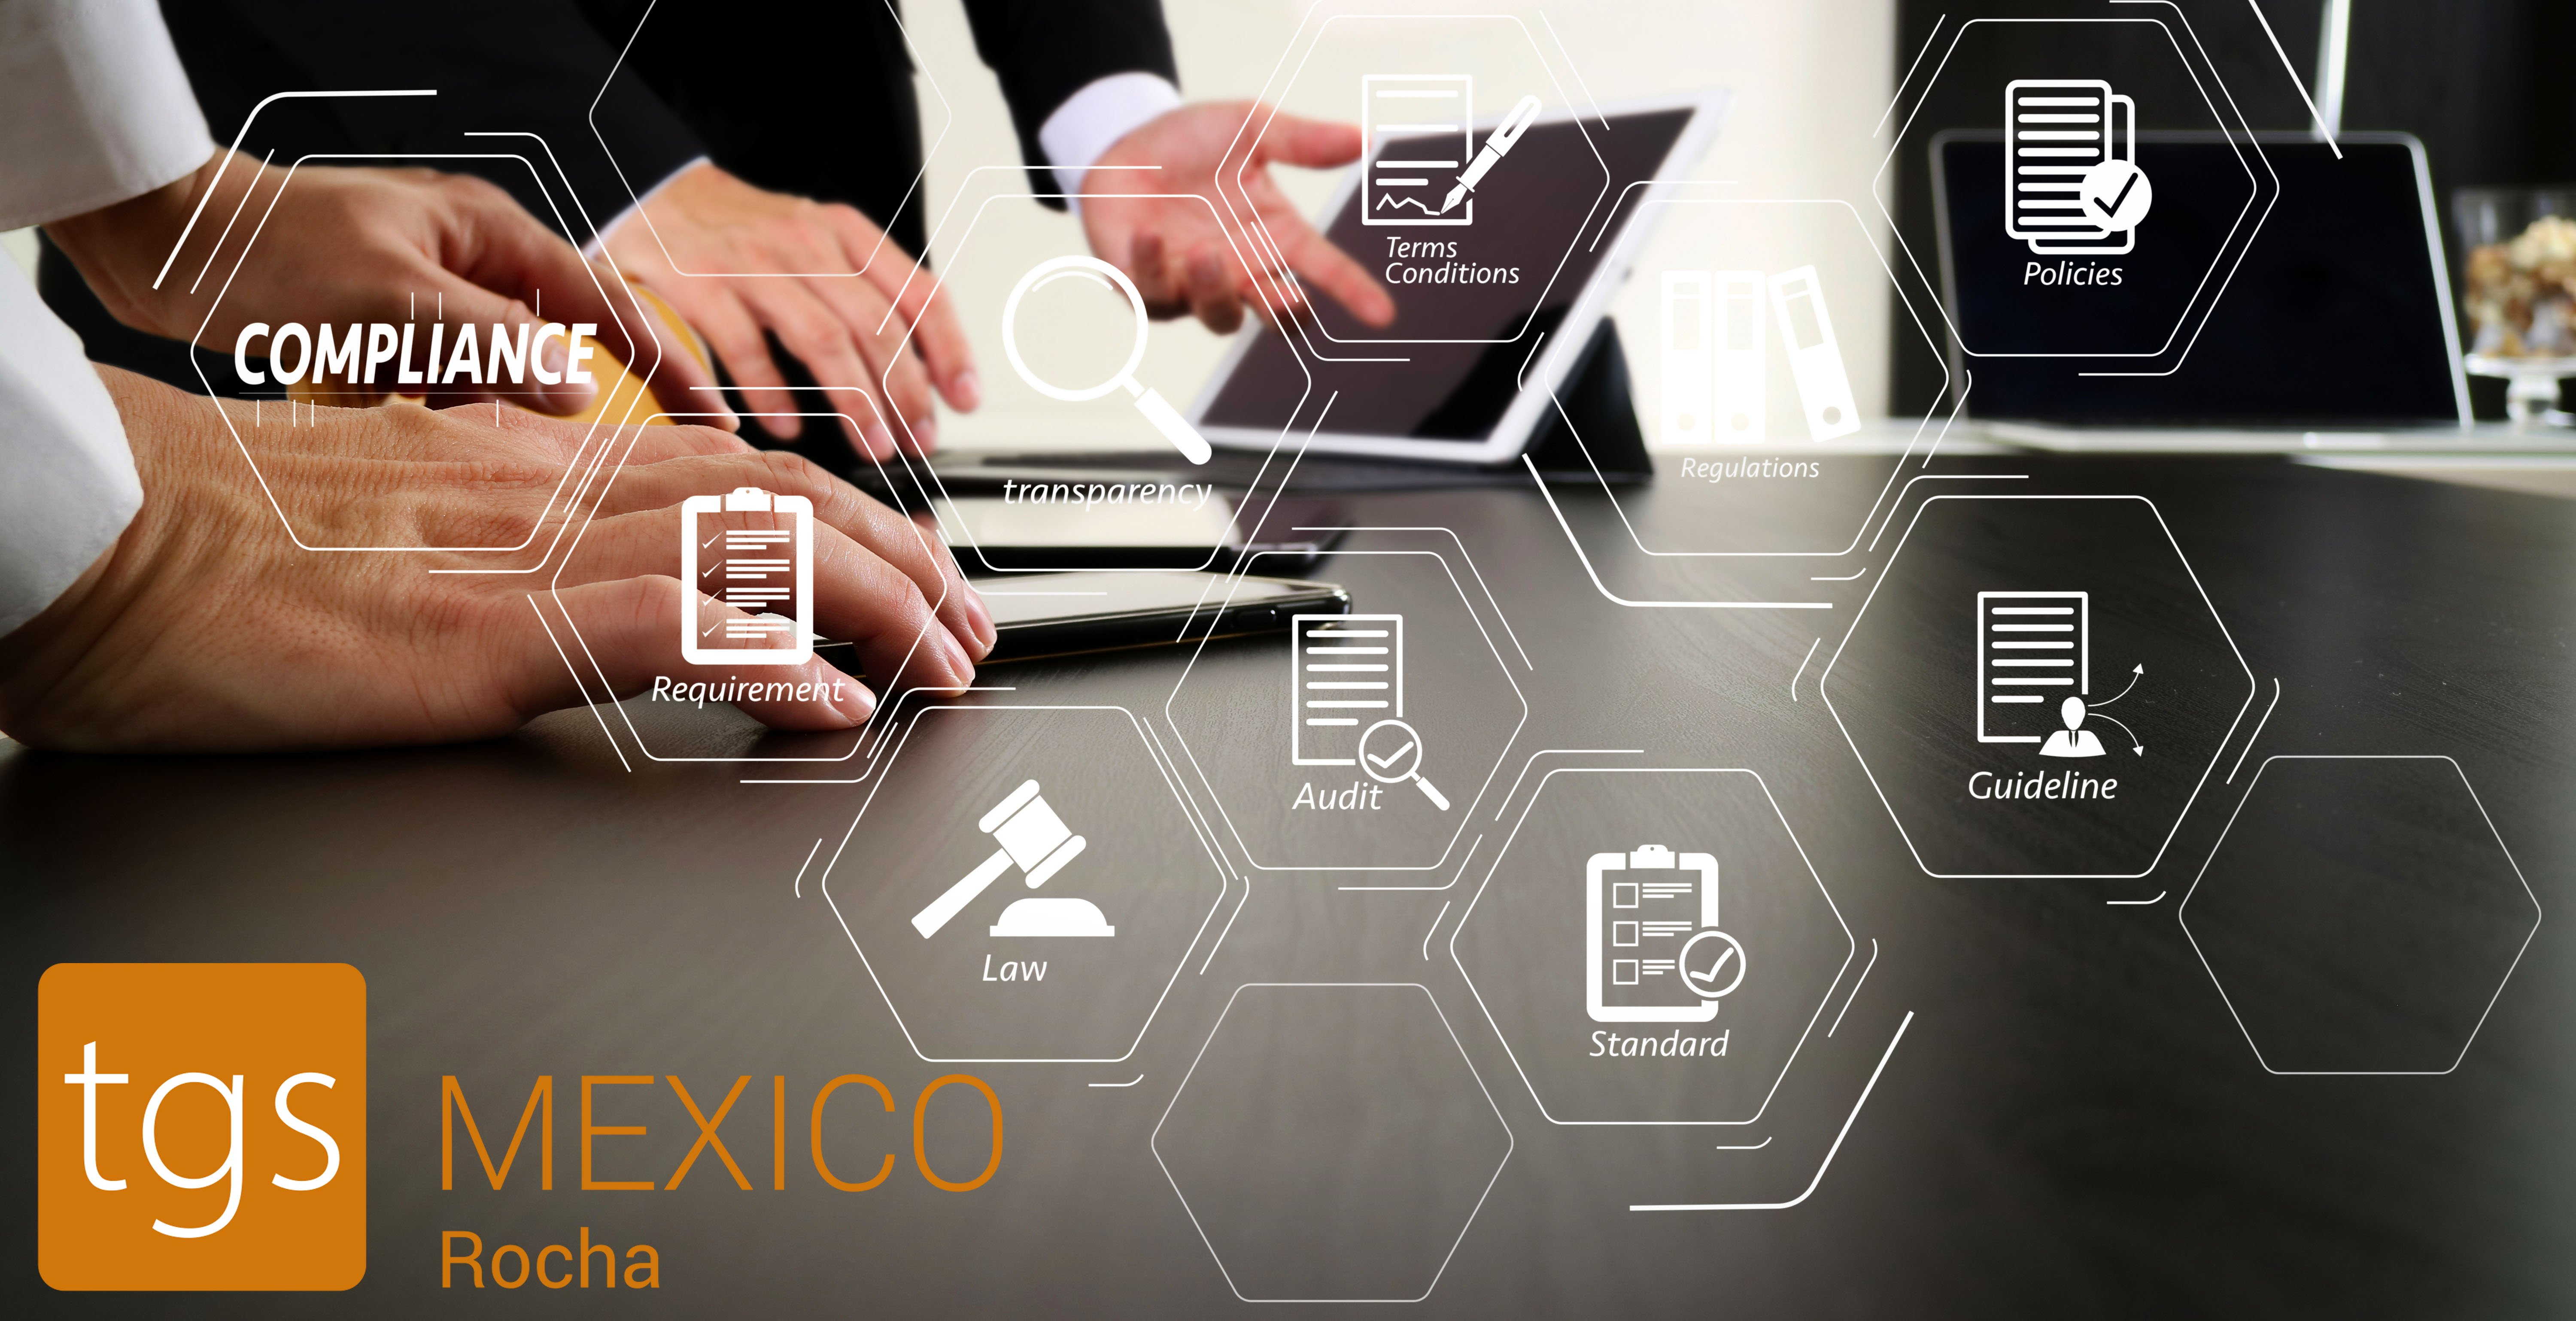 Inhouse bookkeeping vs. outsourcing with an accounting firm for your foreign subsidiary in Mexico